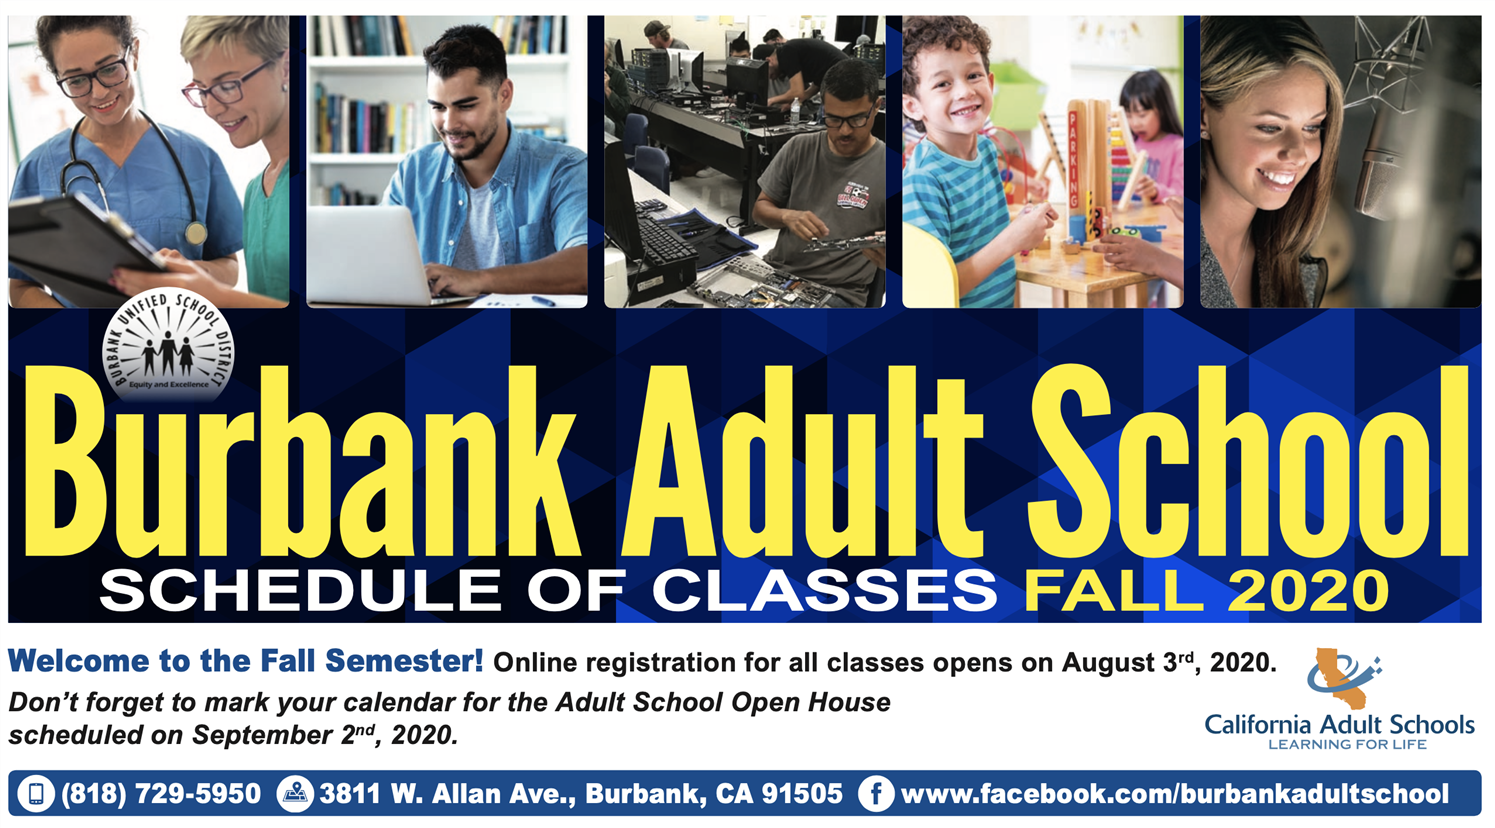 Fall 2020 Adult School Catalog - Registration opens online August 3, 2020